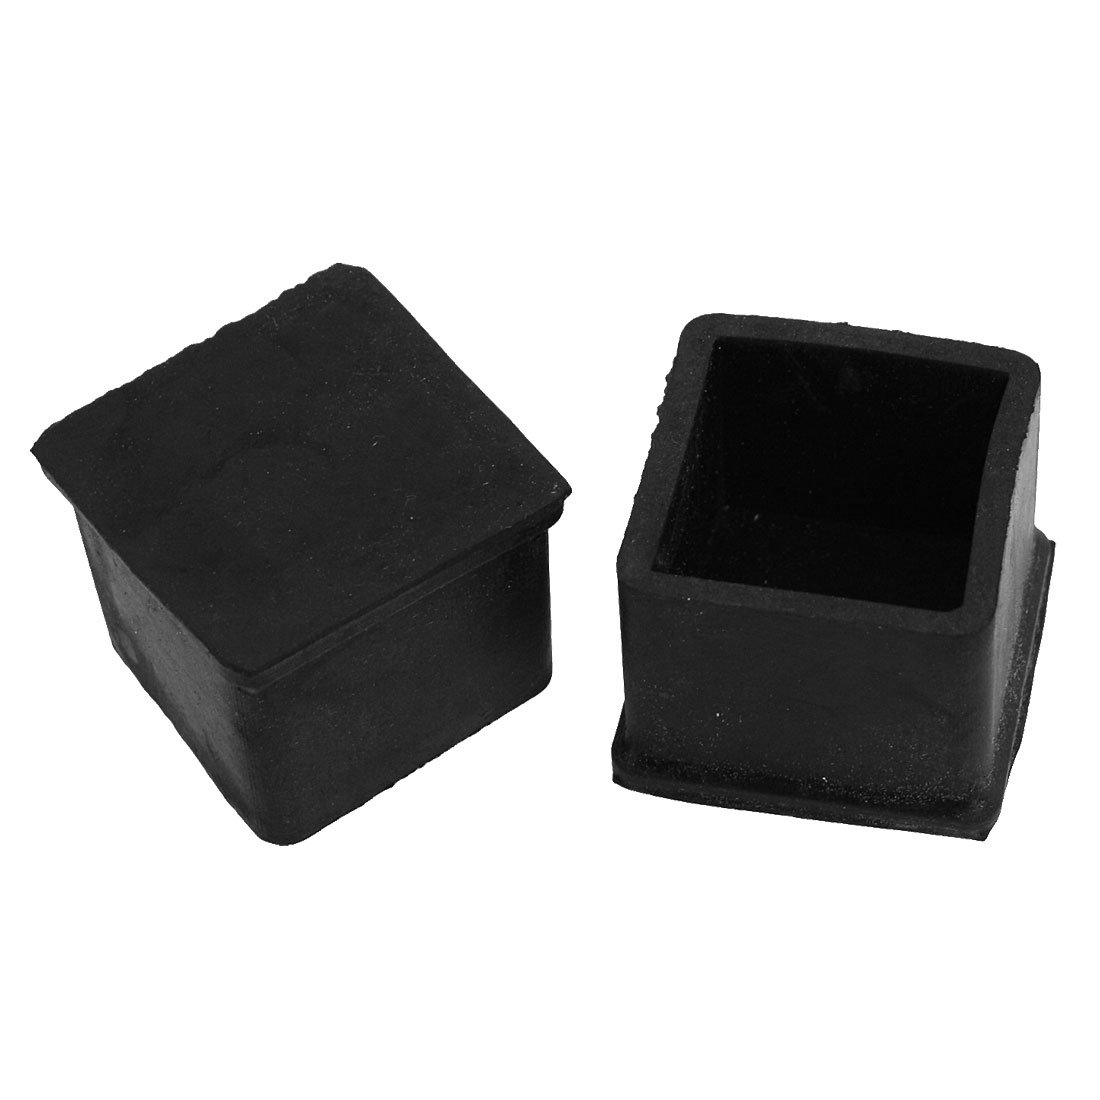 Amazon.com: SODIAL(R) 10 Pcs 30mm X 30mm Furniture Foot Protector Square  Rubber Covers Black: Home U0026 Kitchen